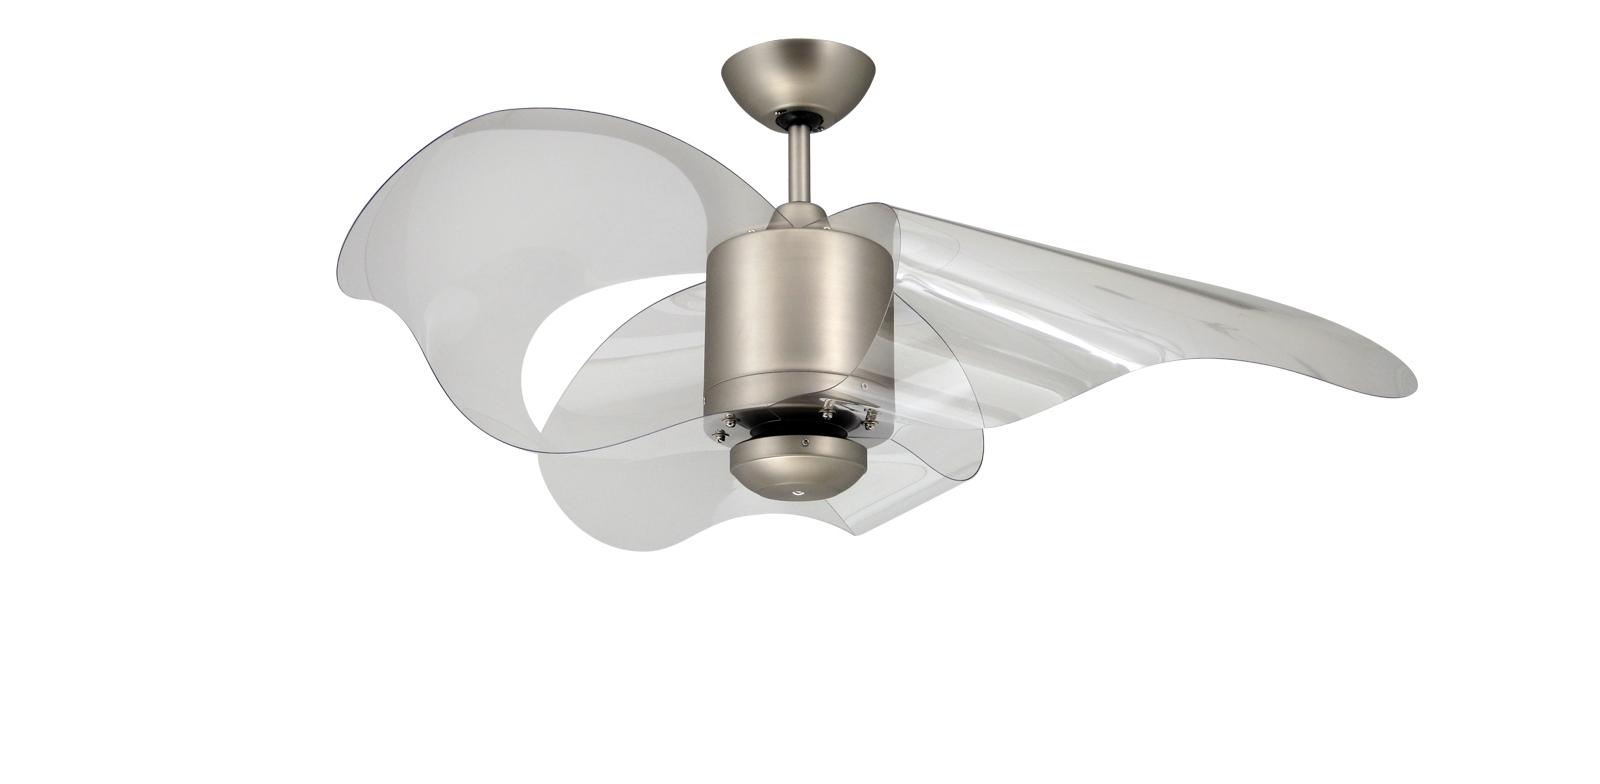 Unique Outdoor Ceiling Fans Throughout Most Up To Date Troposair The L.a. 44 In. Indoor/outdoor Satin Steel Ceiling Fan And (Gallery 9 of 20)